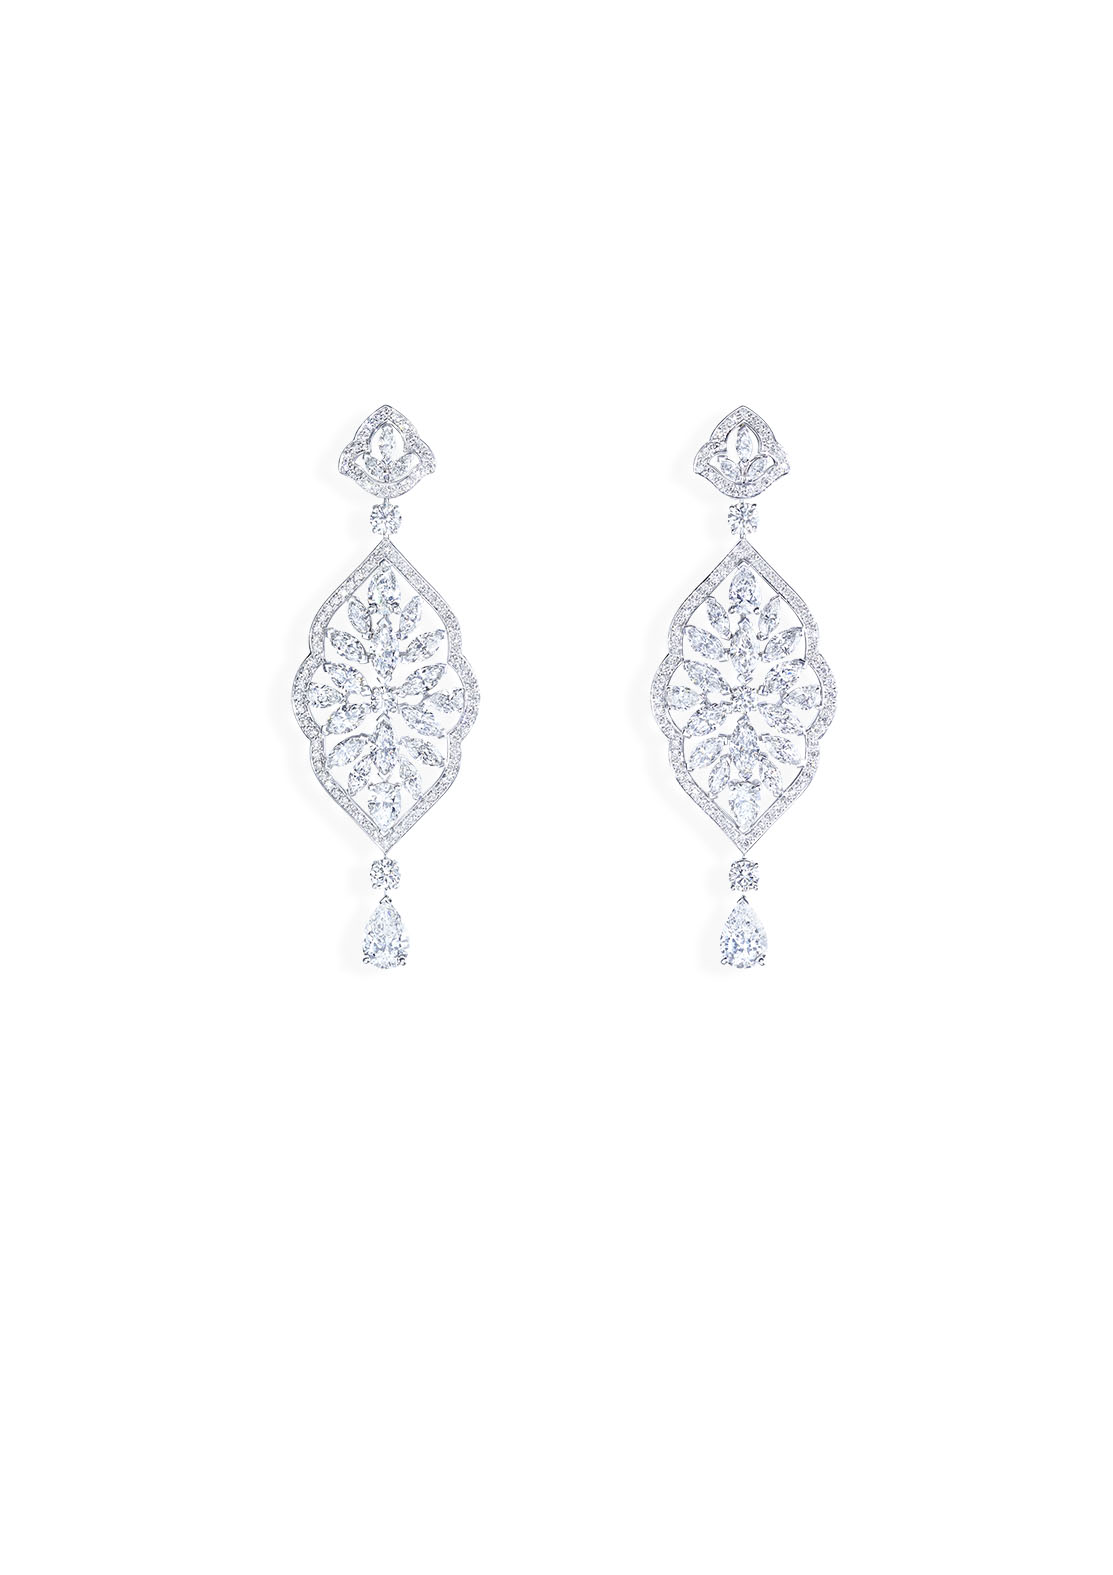 Earrings in 18K white gold set with 2 pear-shaped diamonds (approx. 2.02 cts), 8 pear-shaped diamonds (approx. 2.40 cts), 34 marquise-cut diamonds (approx. 7.32 cts) and 154 brilliant-cut diamonds (approx. 2.53 cts).